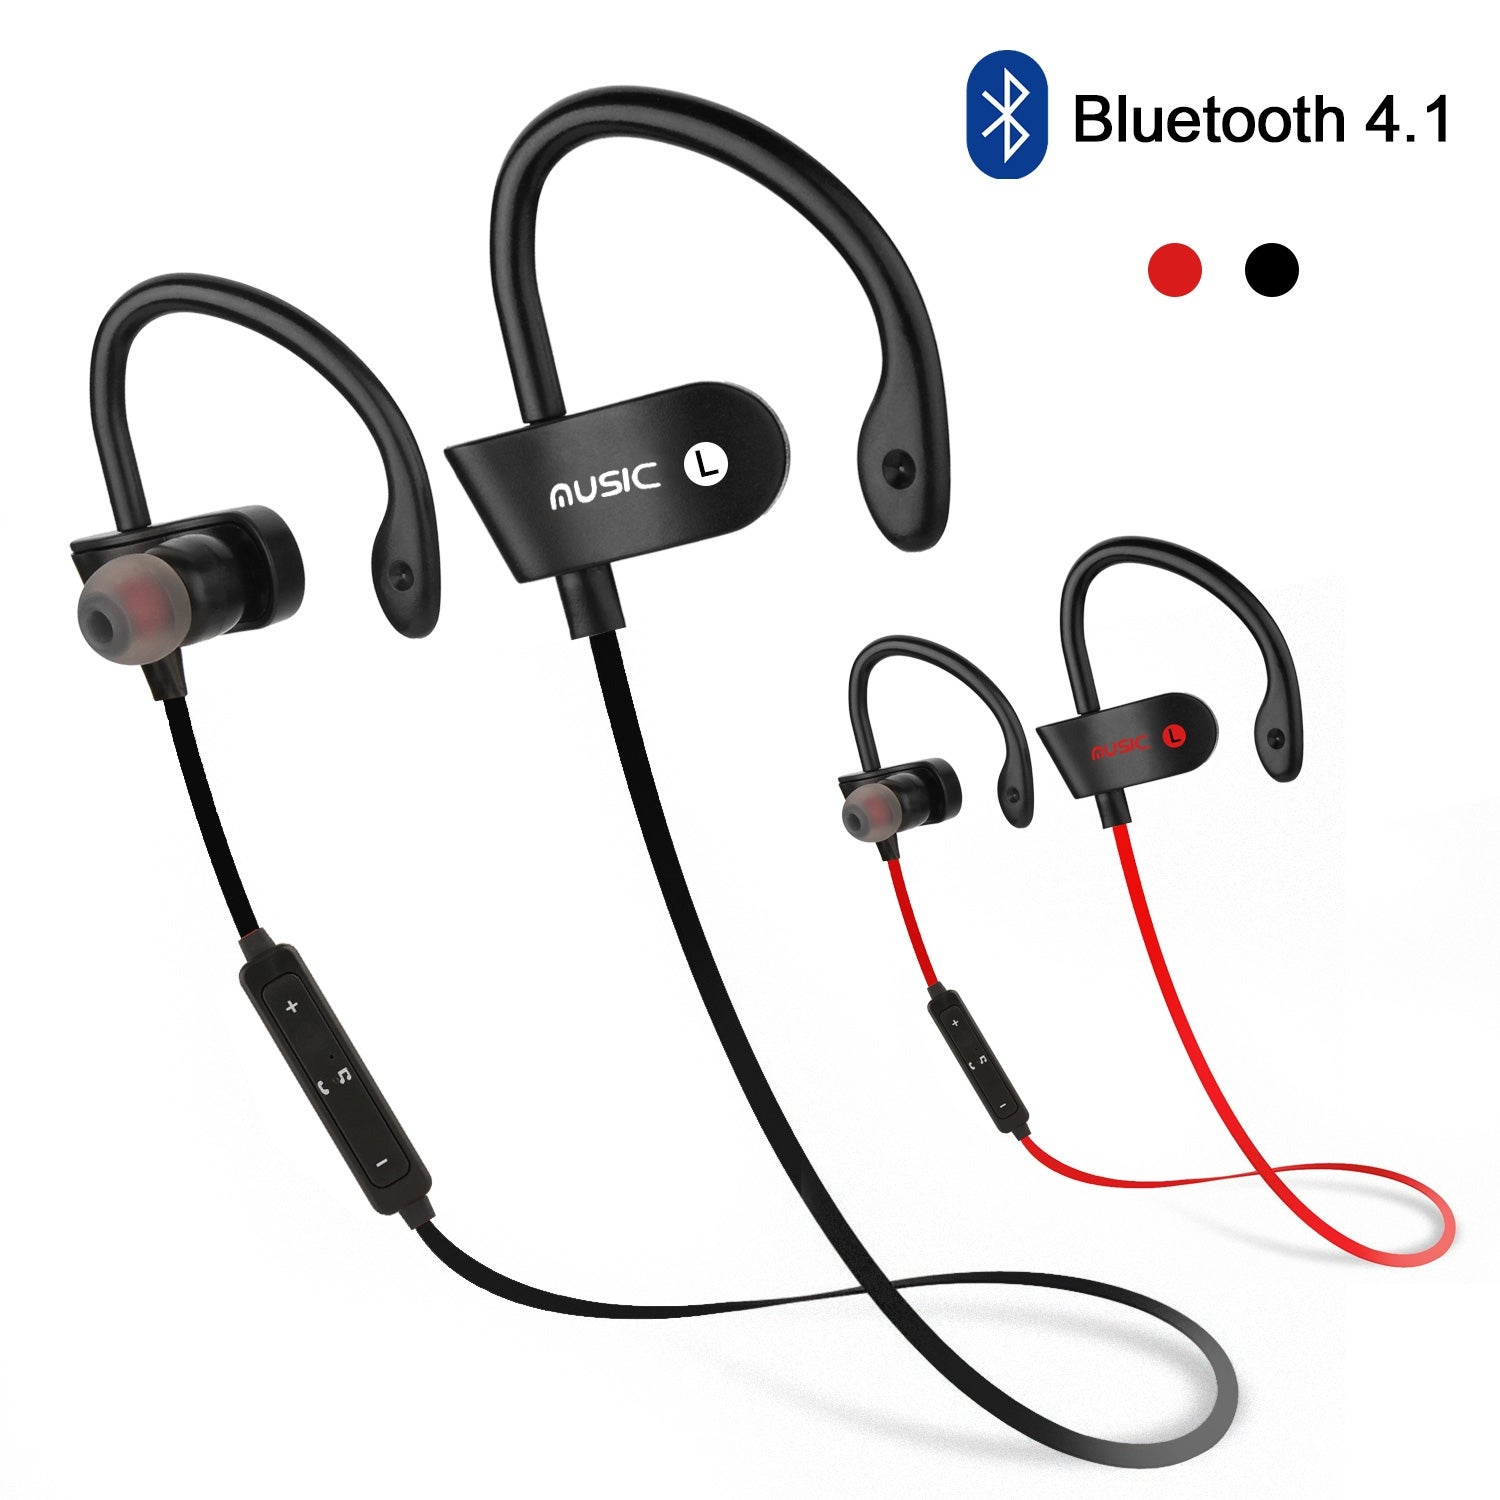 Shop Agptek Waterproof Bluetooth Earbuds Beats Sports Wireless Headphones With Mic For Gym Use For Running In Ear Headsets Overstock 28916225